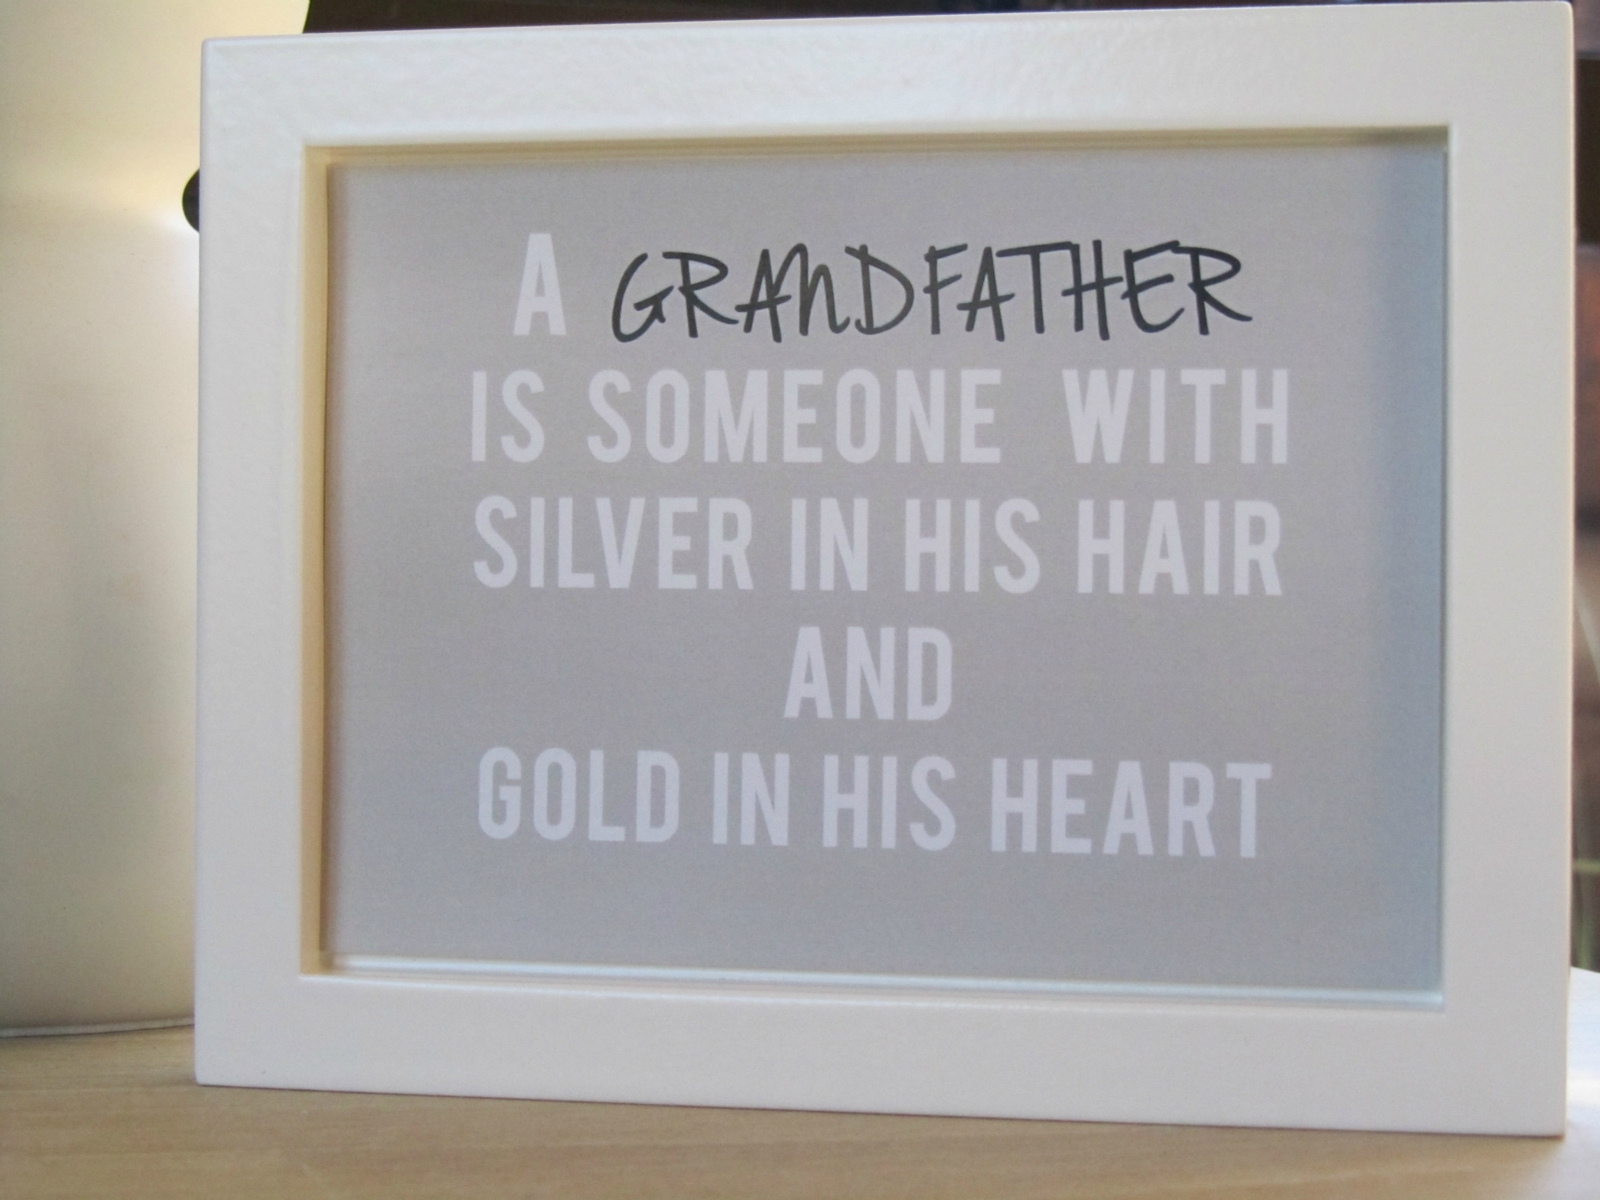 Grandfather quote #1